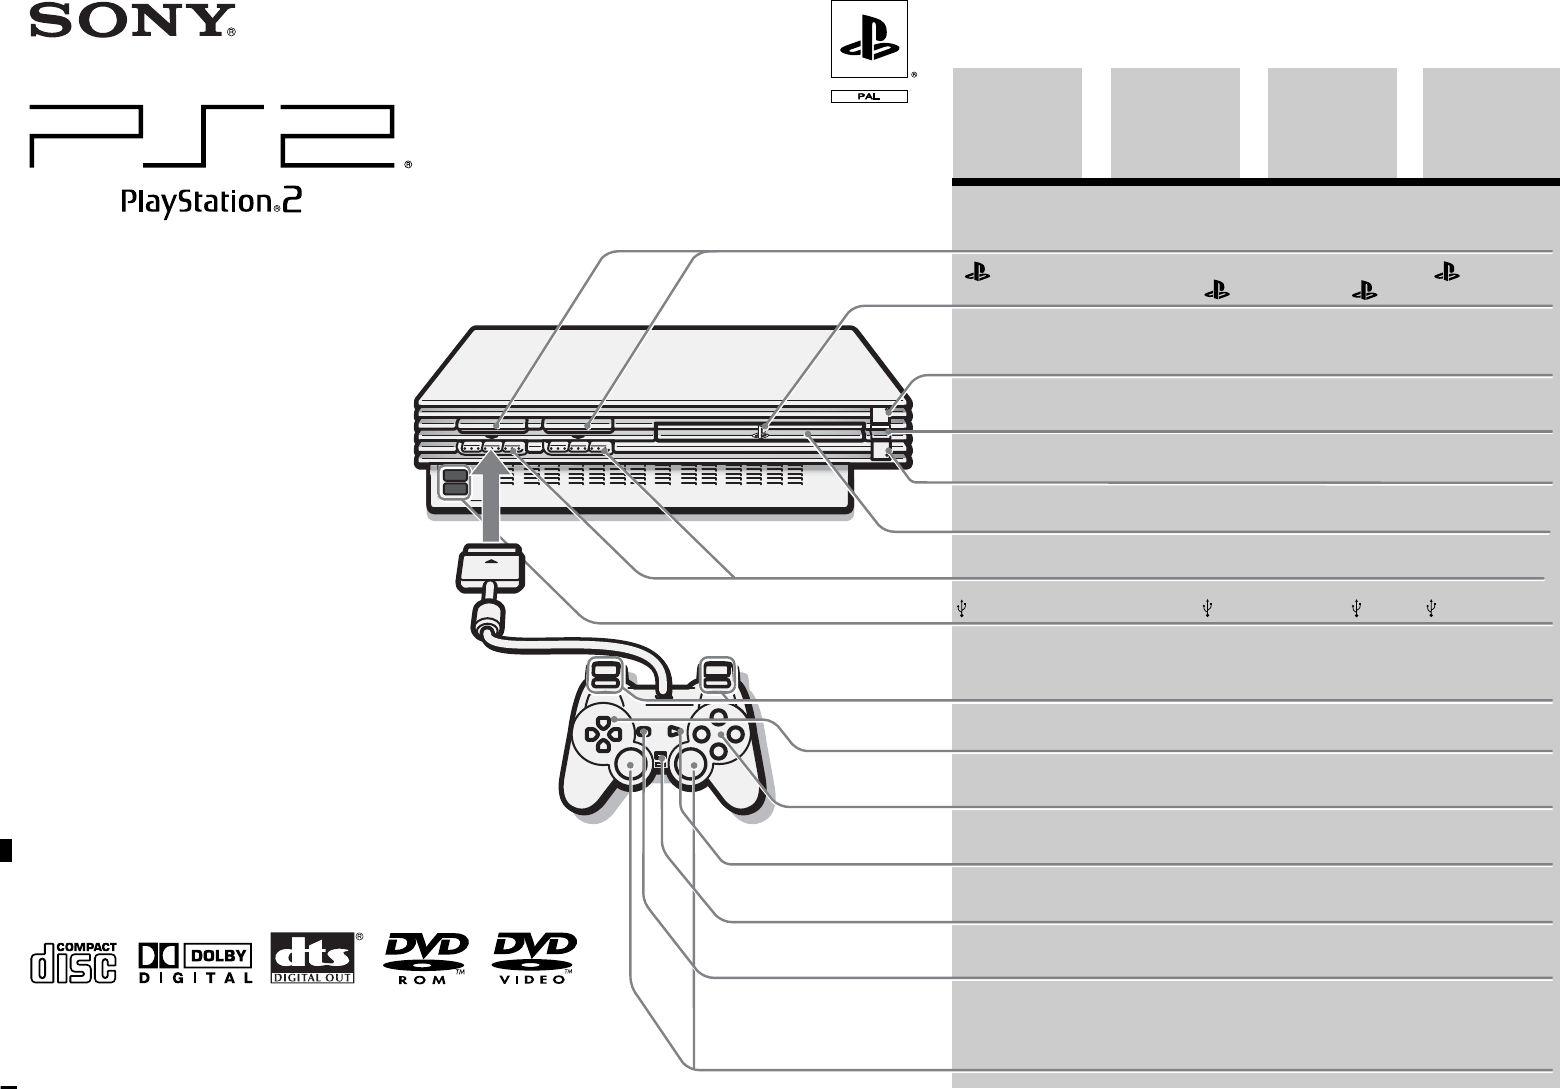 sony video game console scph 50004 ss user guide manualsonline com rh videogame manualsonline com sony playstation user manual sony playstation 2 instruction manual